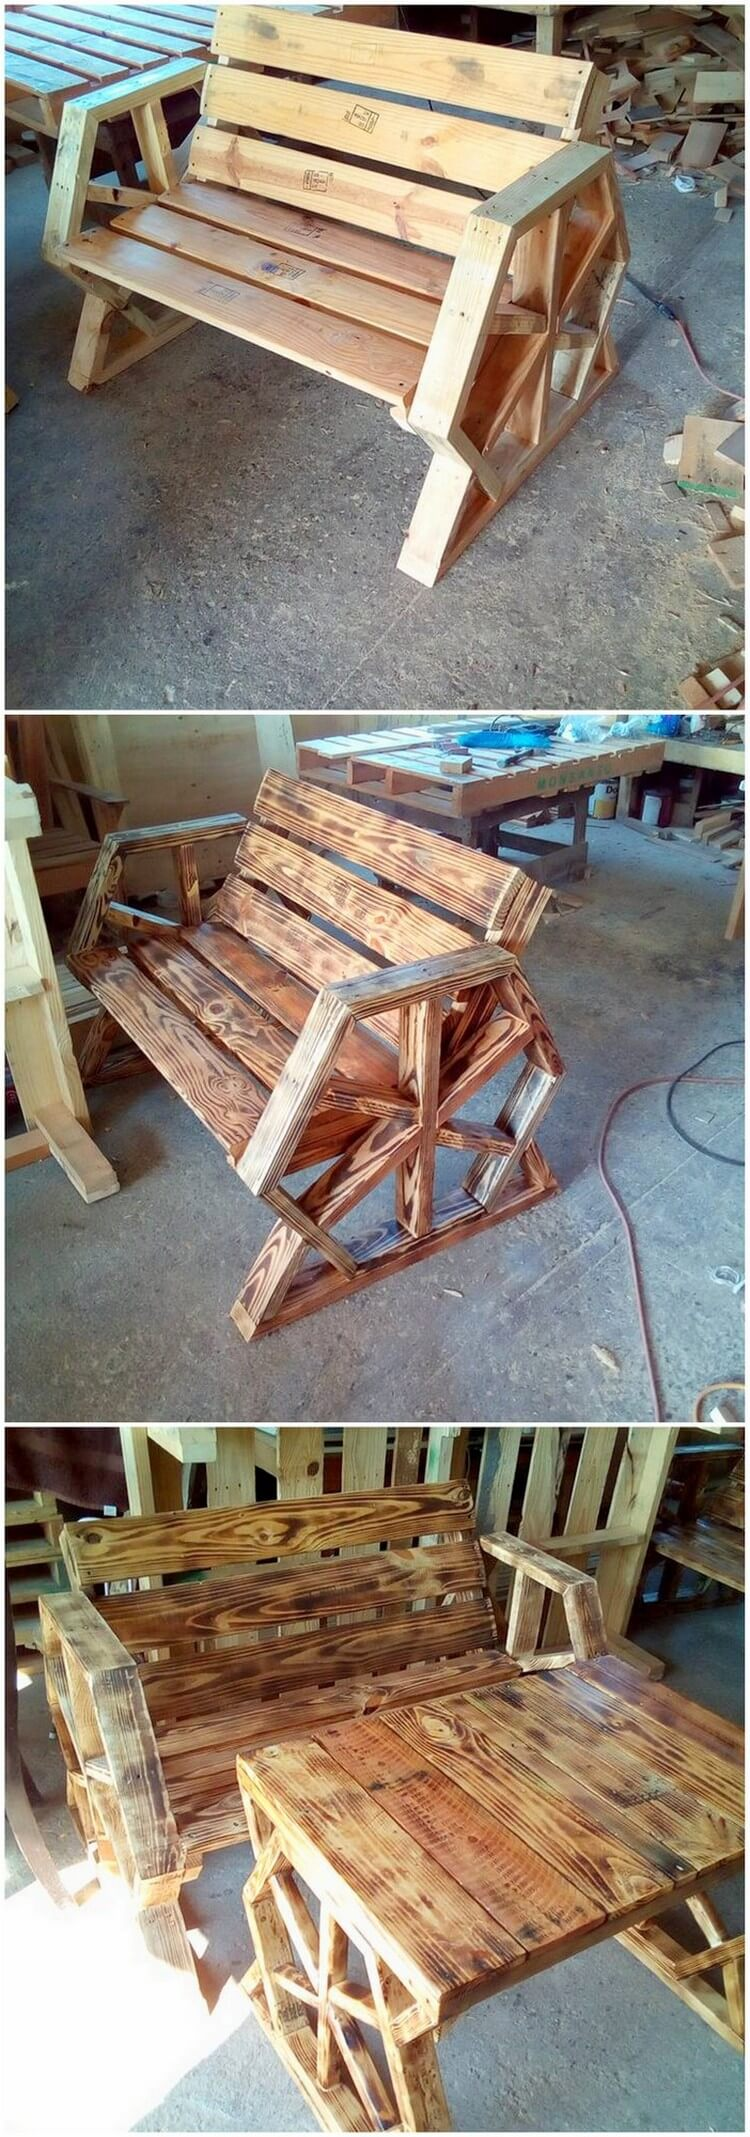 Pallet Bench and Table (2)